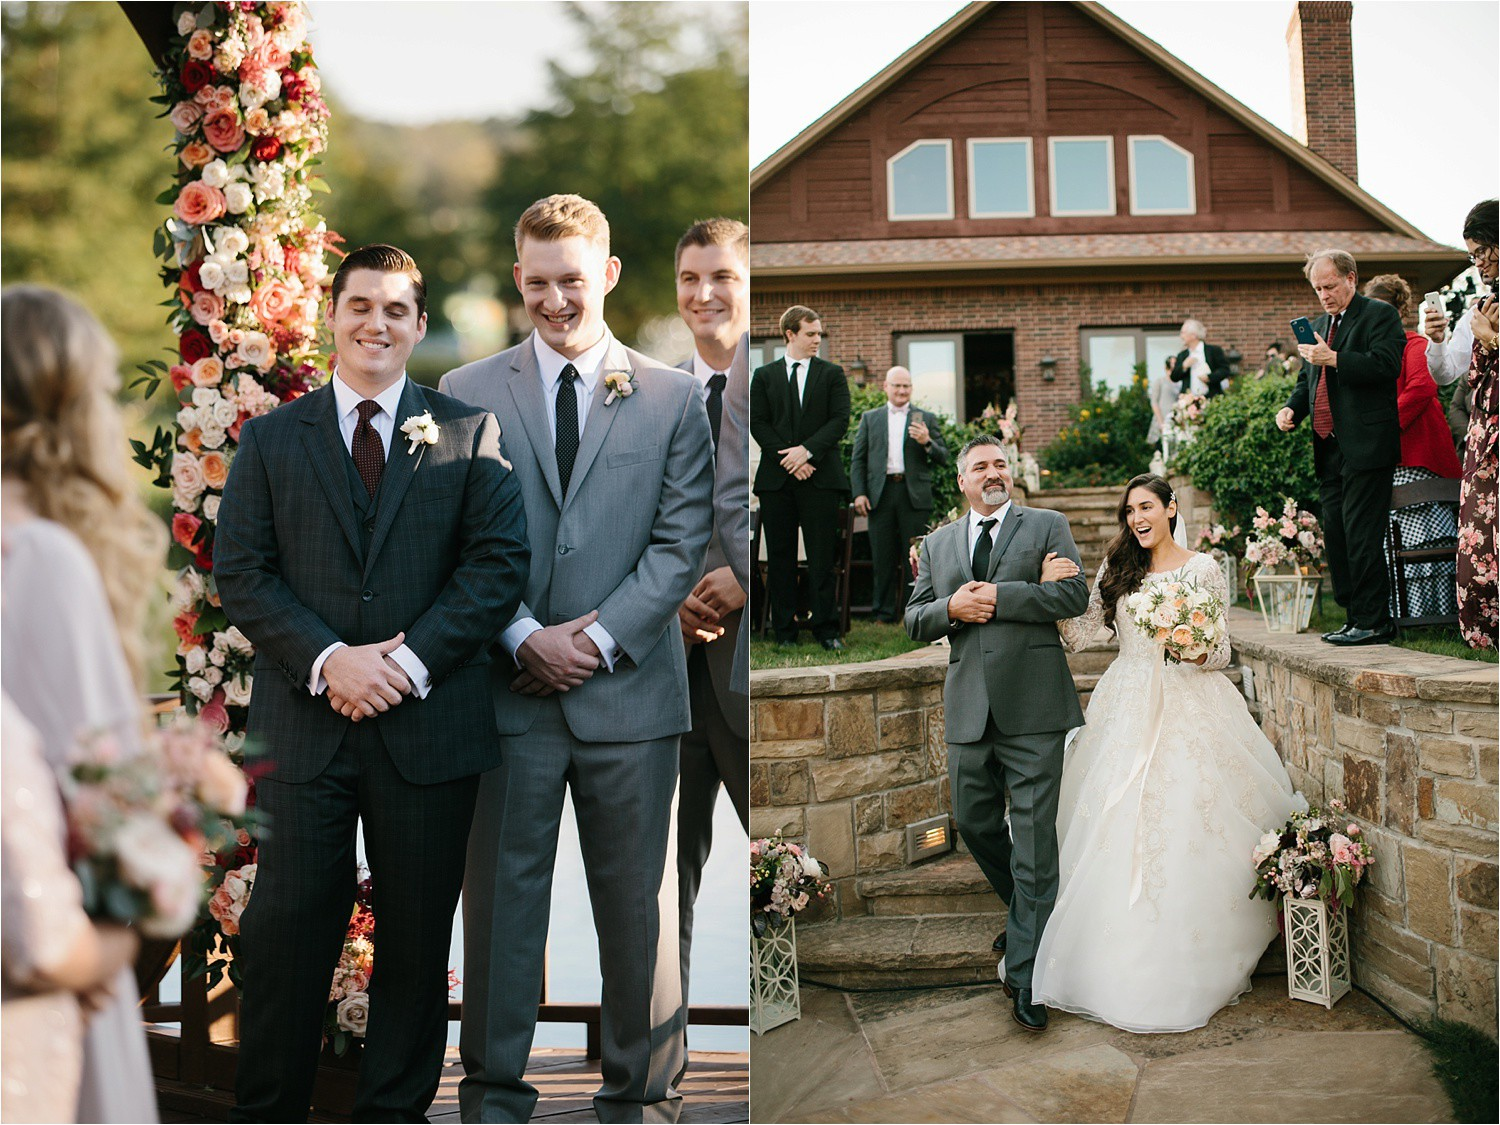 an-elegant-family-ranch-wedding-on-lake-worth-with-burgundy-apricot-and-blush-inspired-decorations-by-north-texas-wedding-photographer-rachel-meagan-photography-_-24